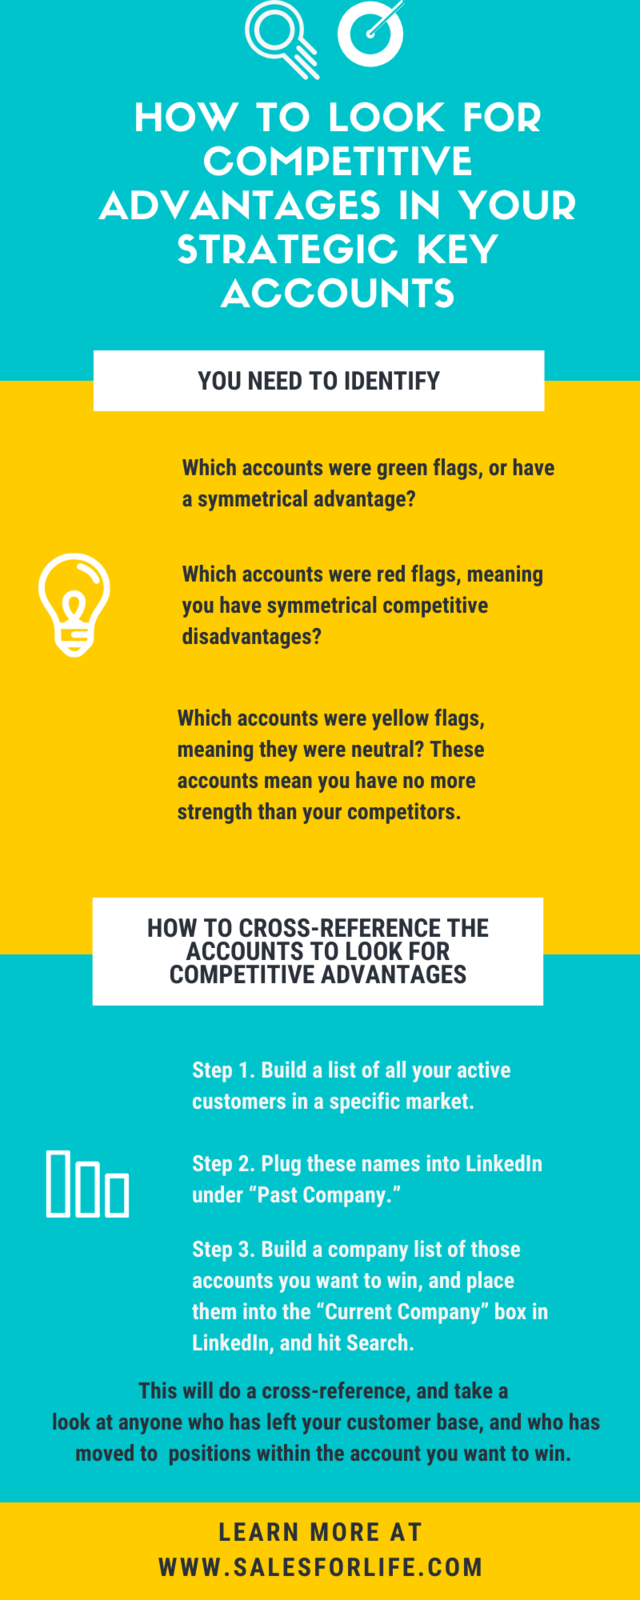 How to look for competitive advantages